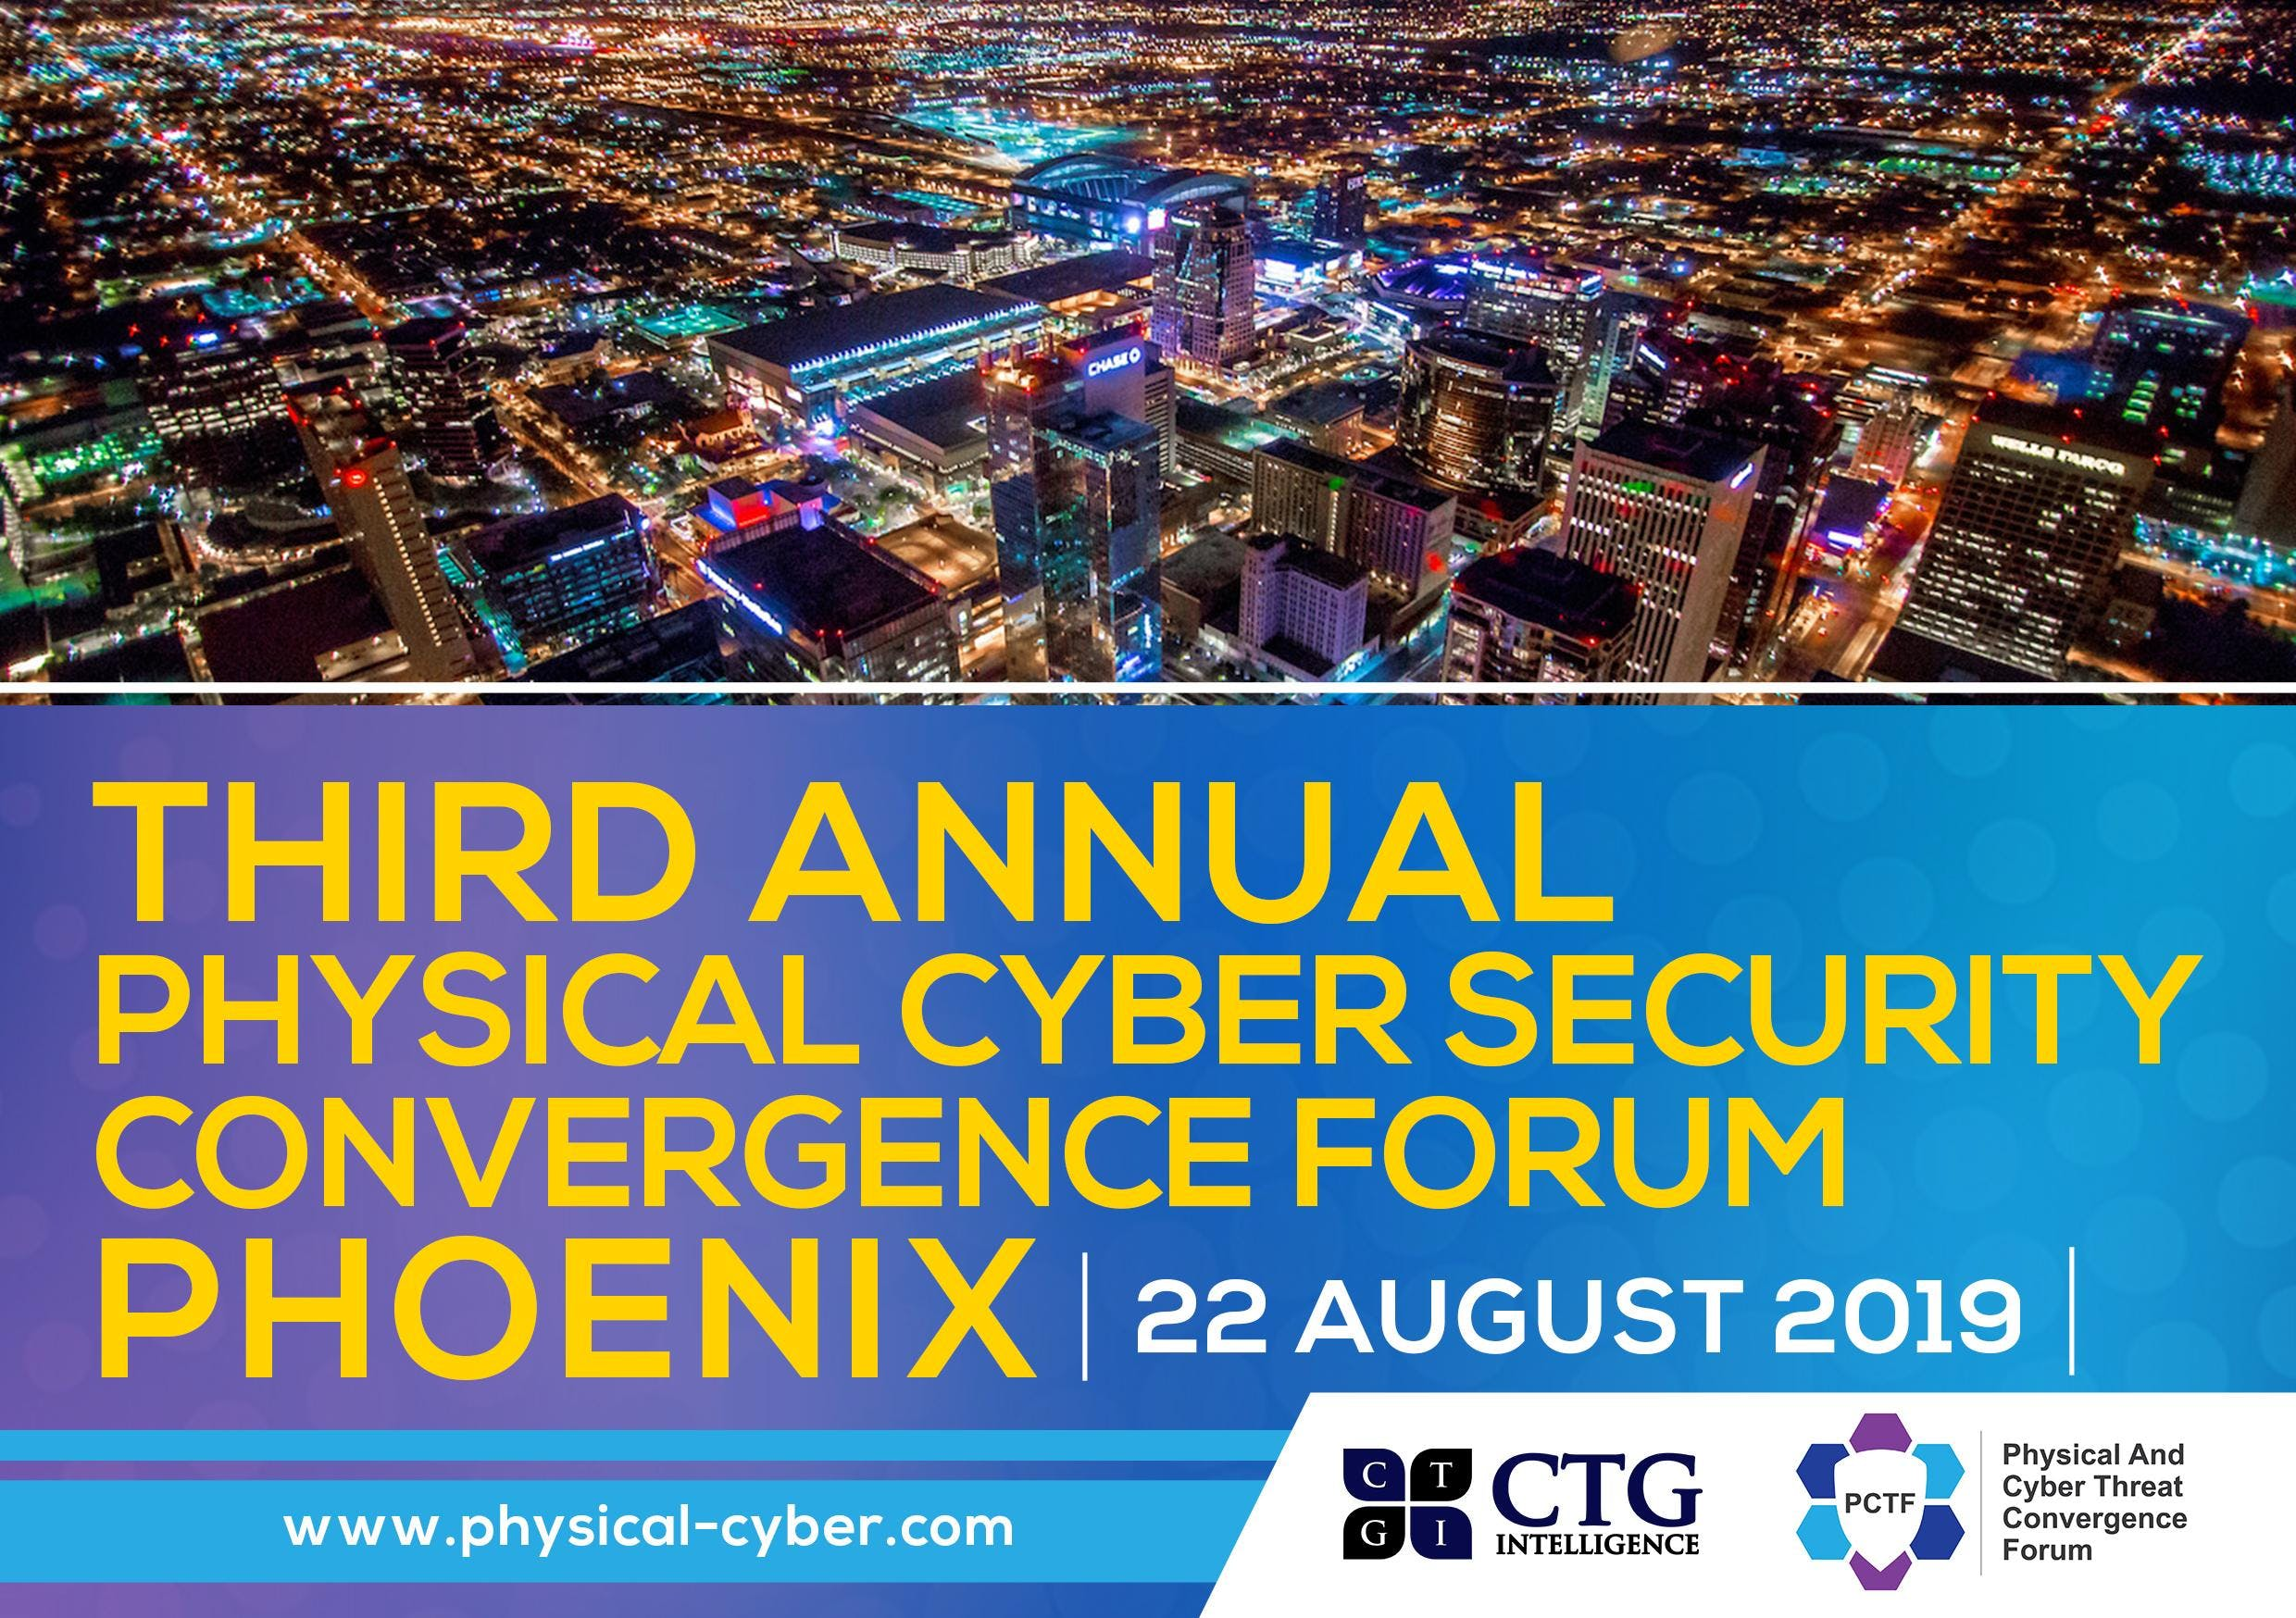 Third Annual Physical Cyber Security Forum Phoenix